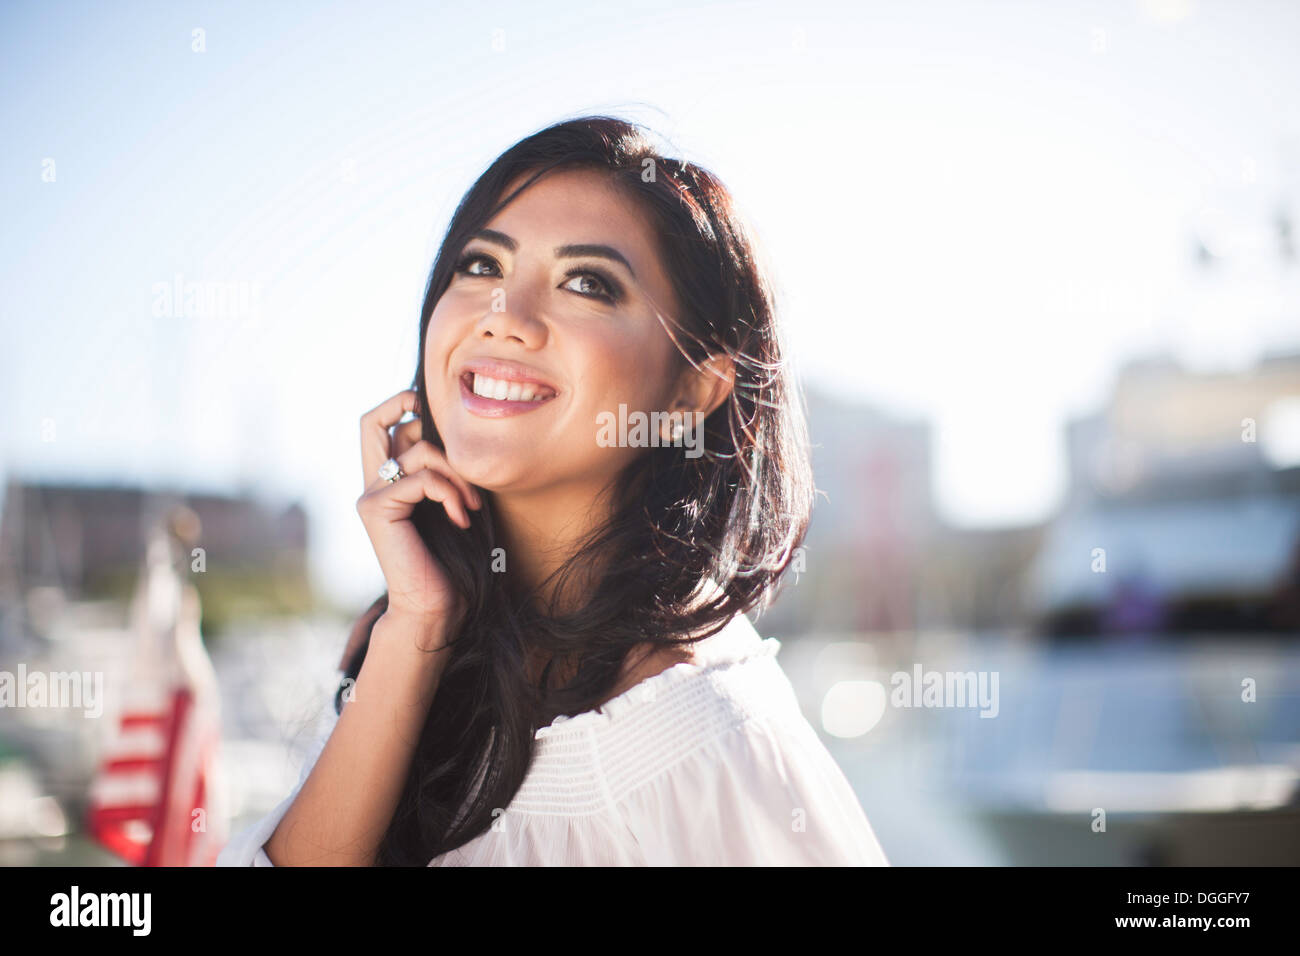 Portrait of young woman on yacht in marina, San Francisco, California, USA - Stock Image